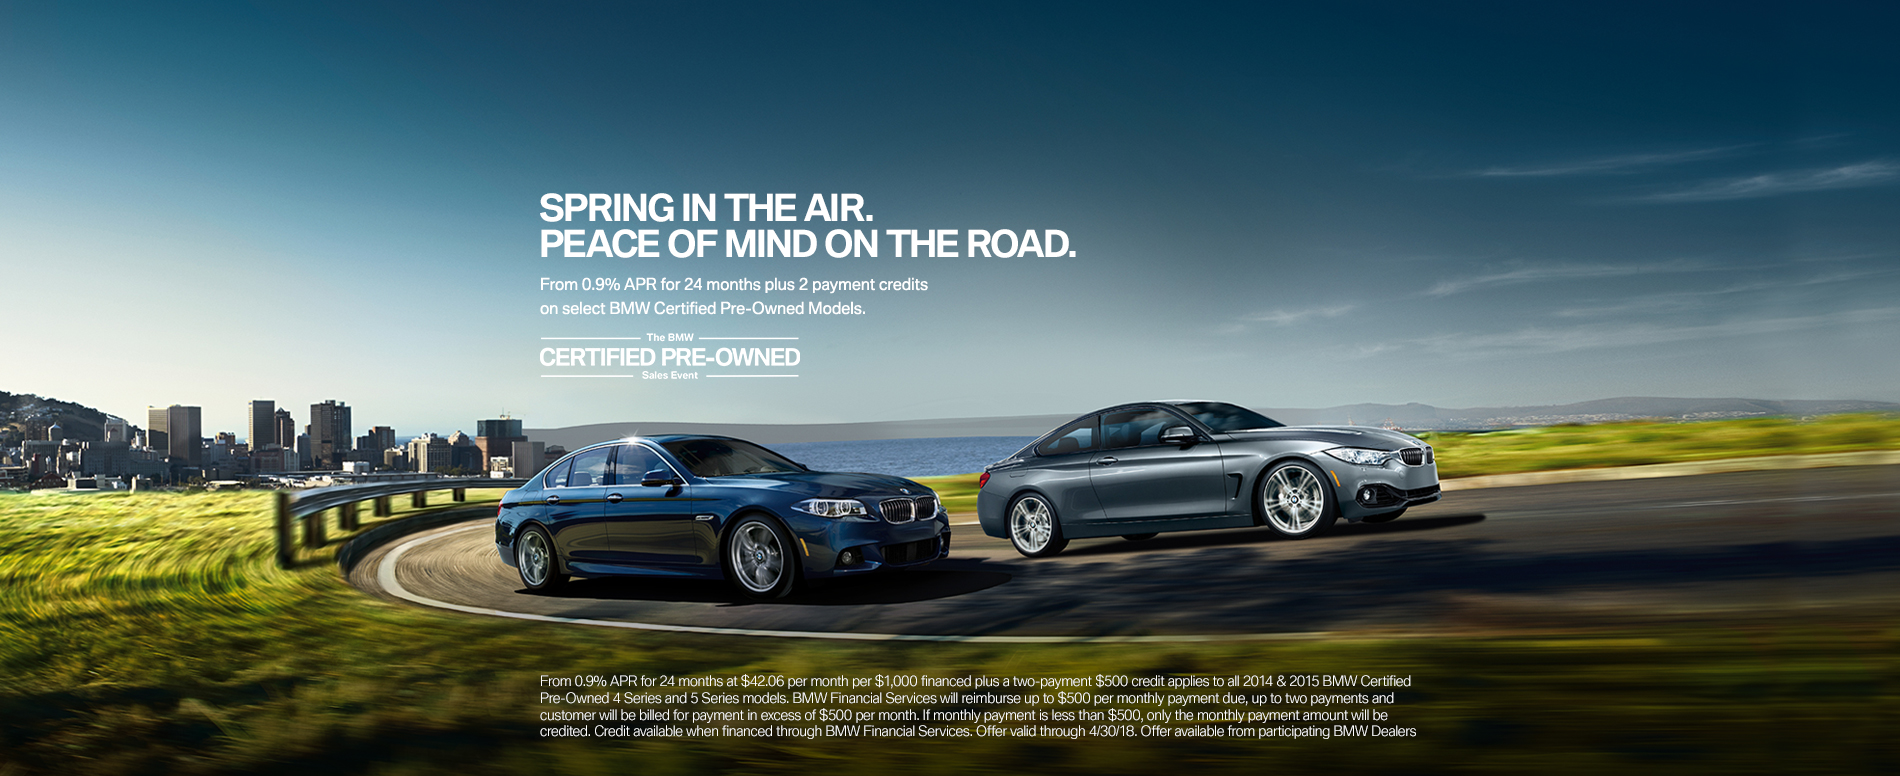 From 0.9% APR for 24 months plus 2 payment credits on select BMW